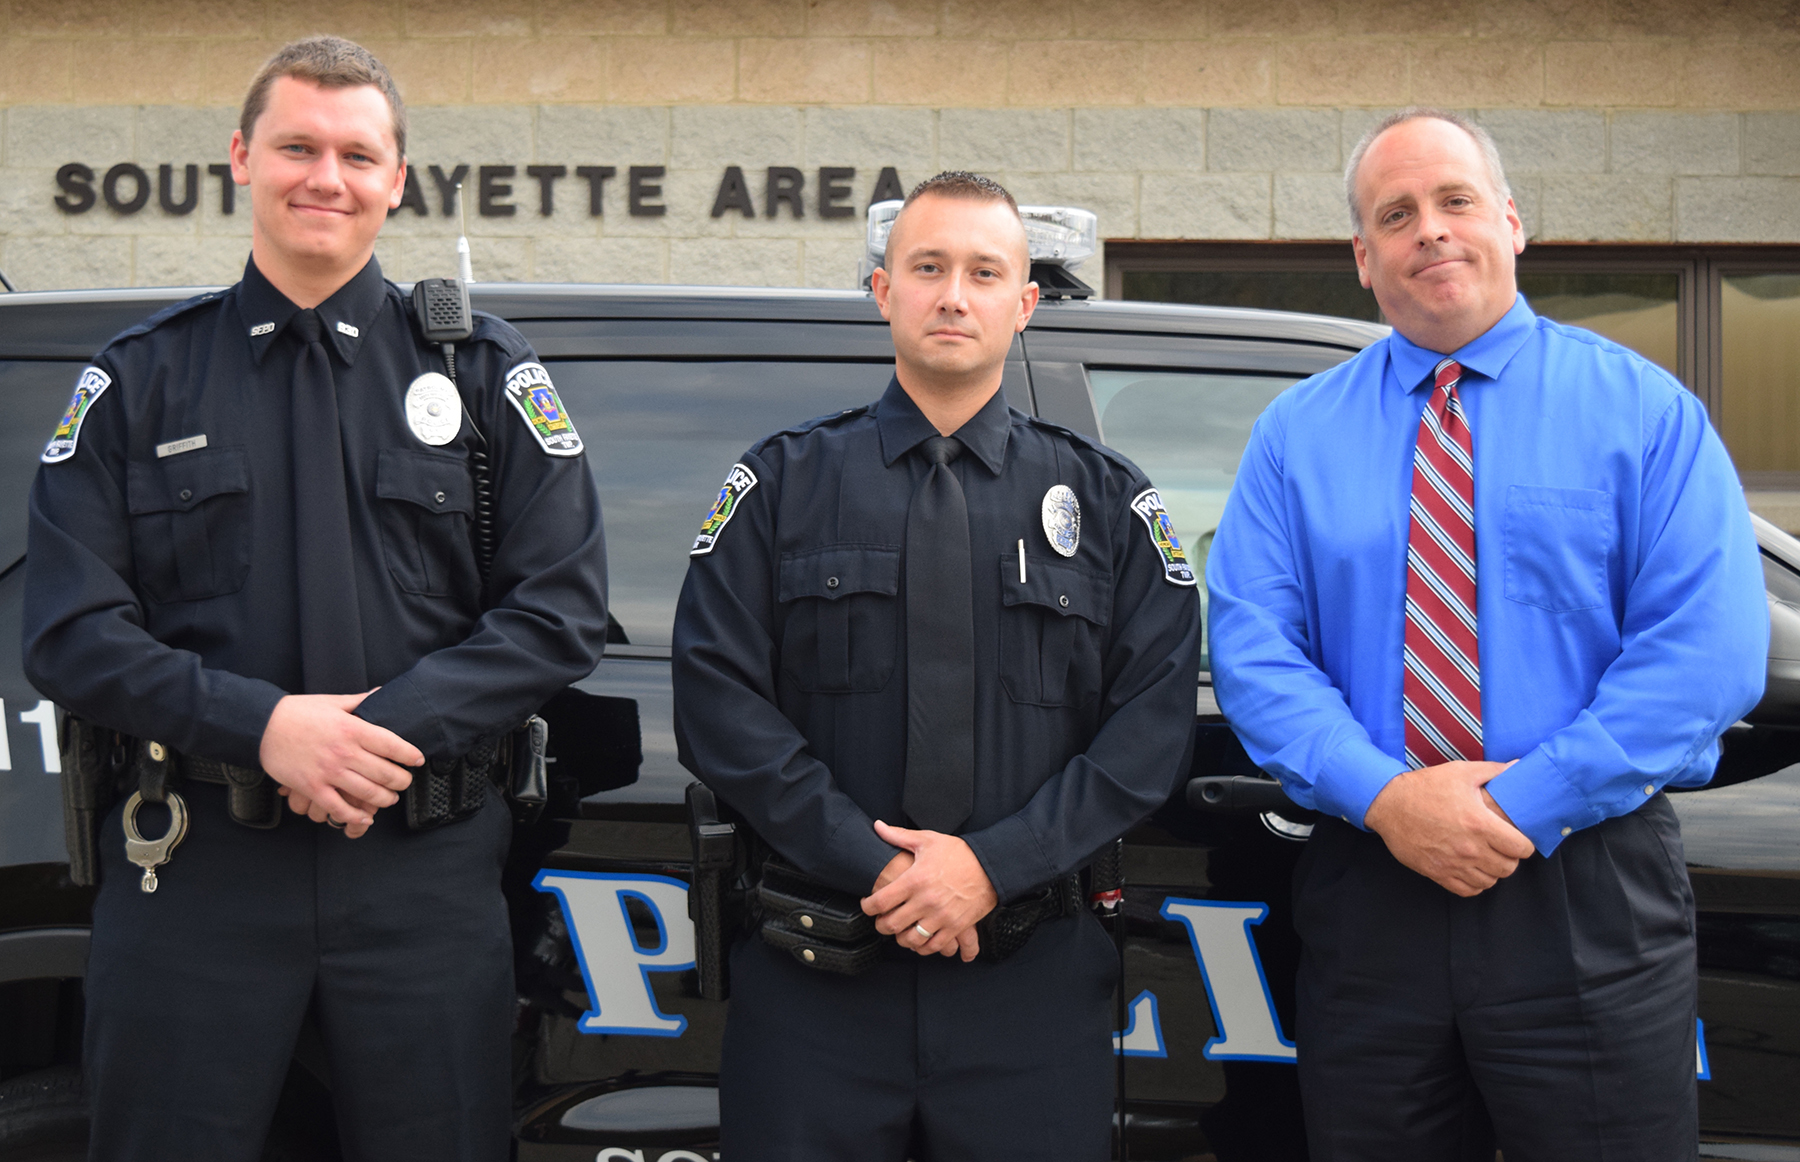 South Fayette Township police officers Griffith, Monyak and Handerhan